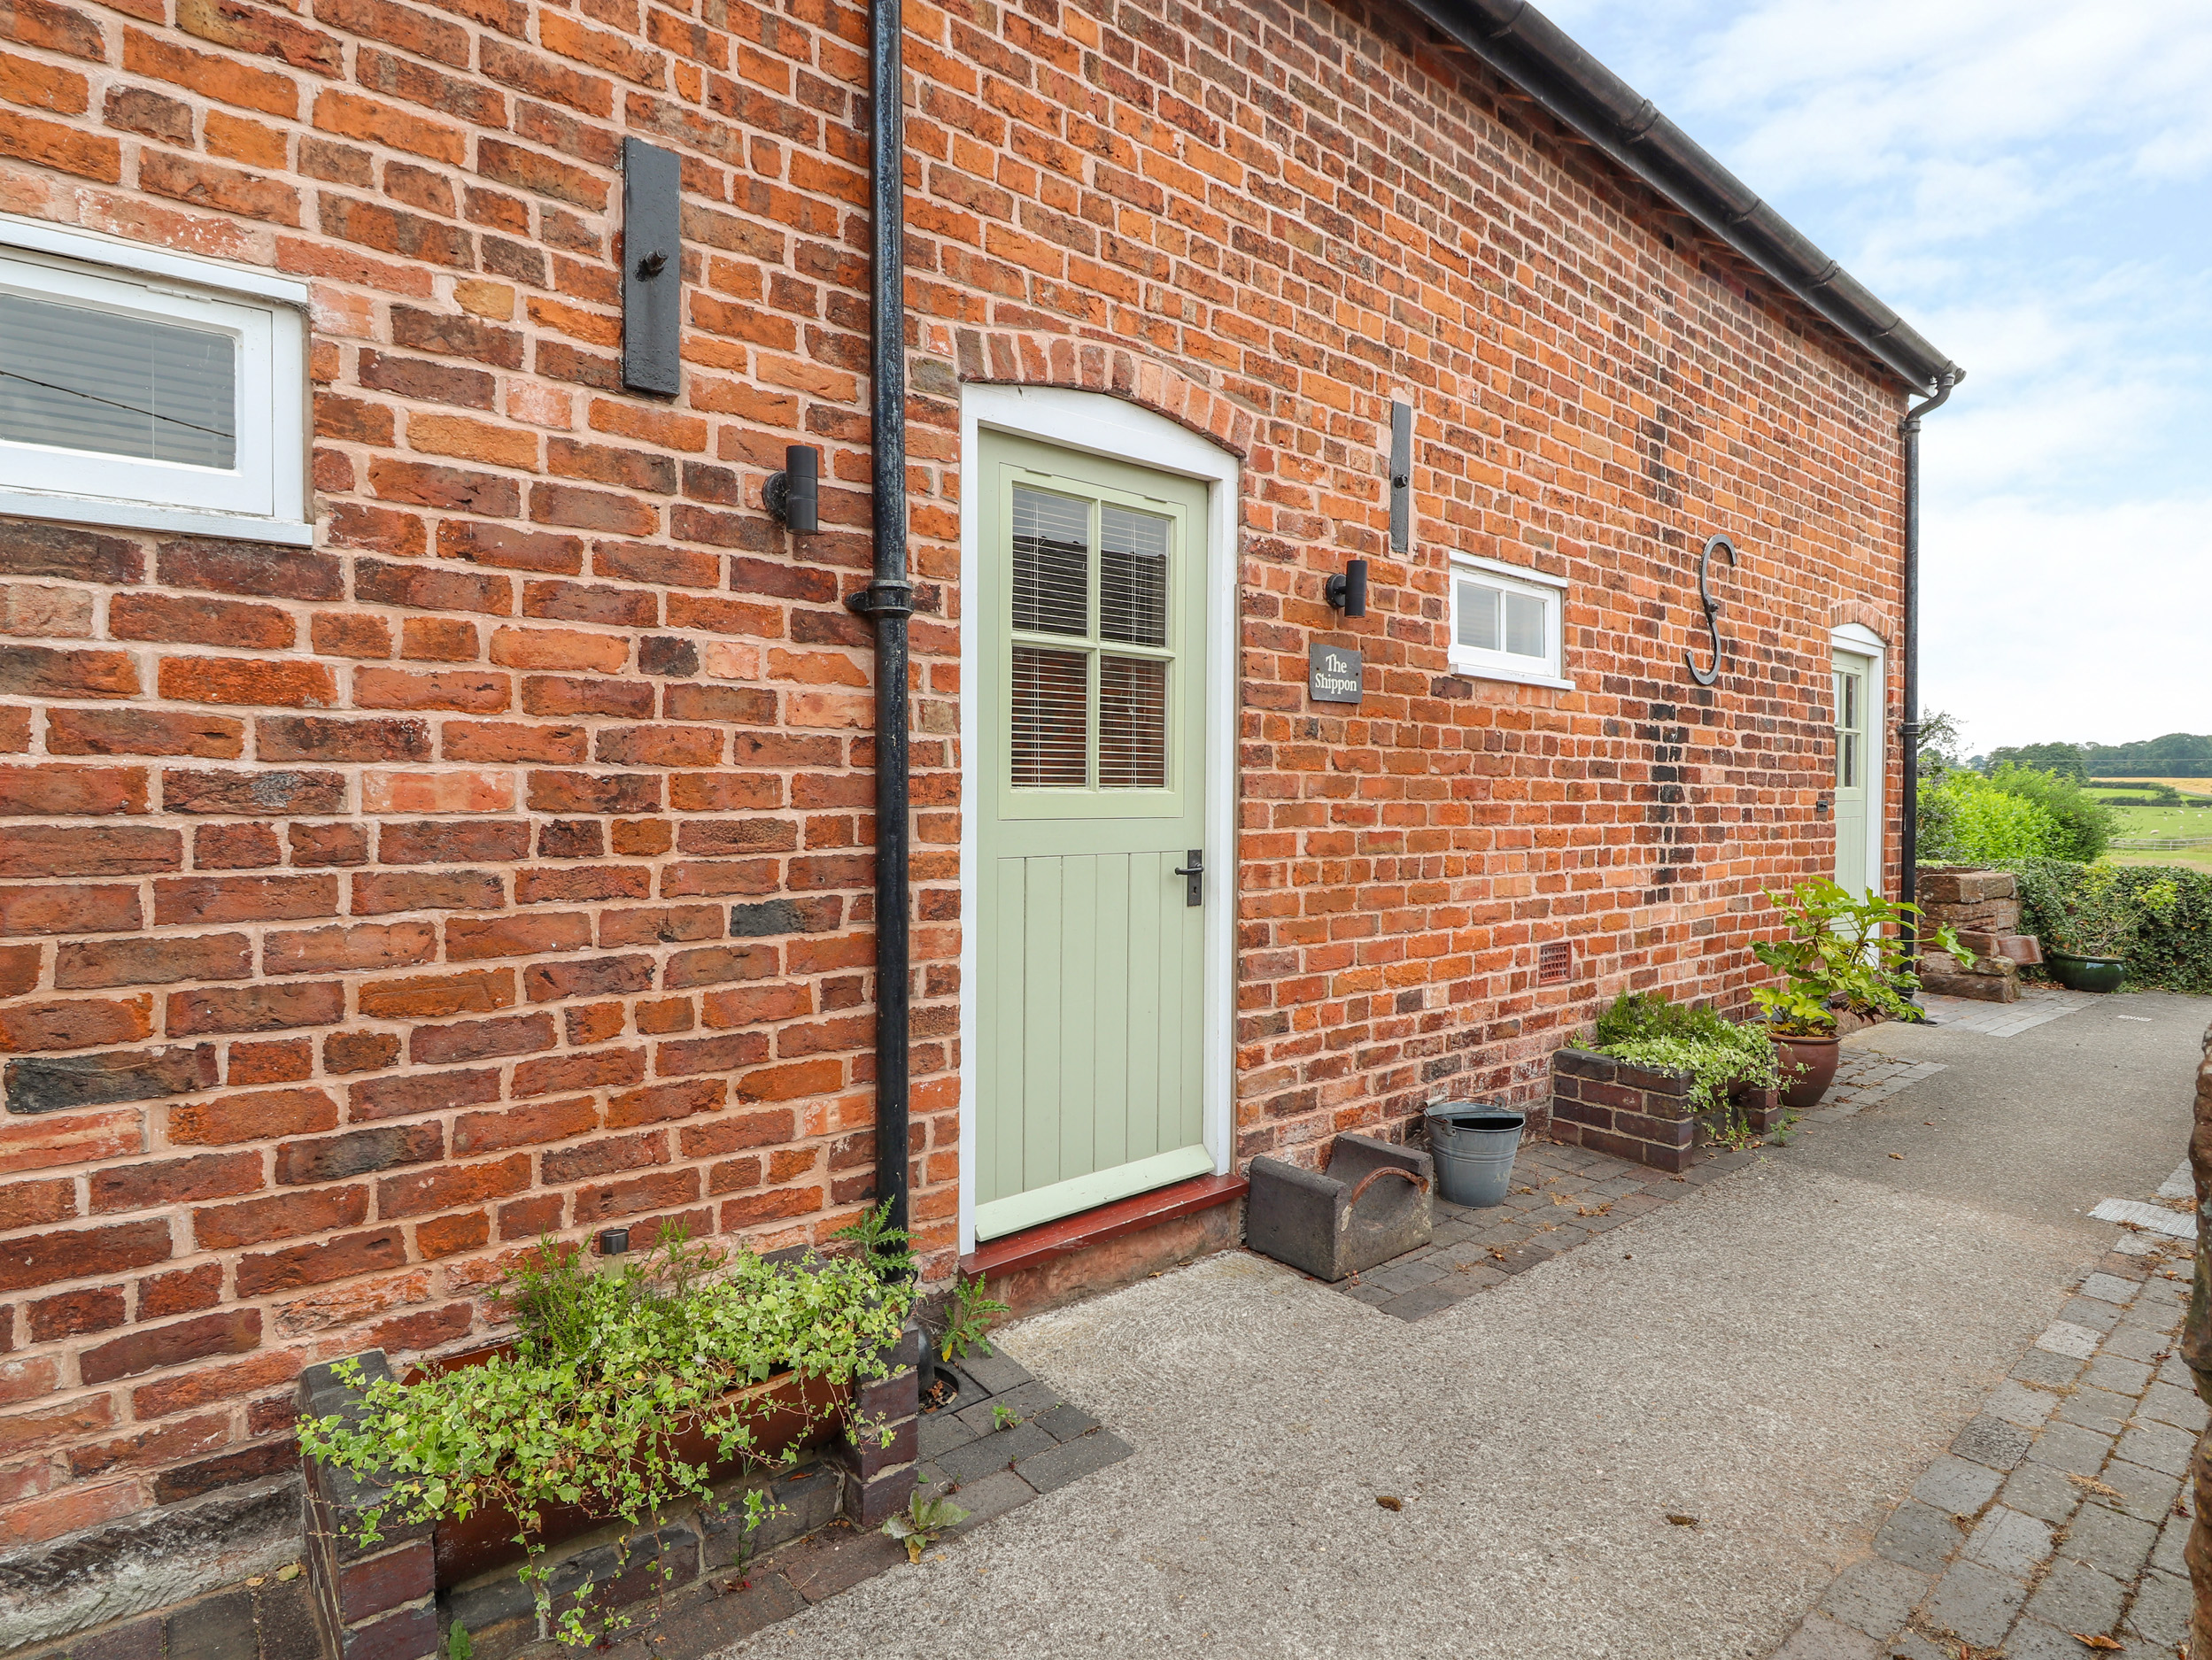 2 bedroom Cottage for rent in Tarporley